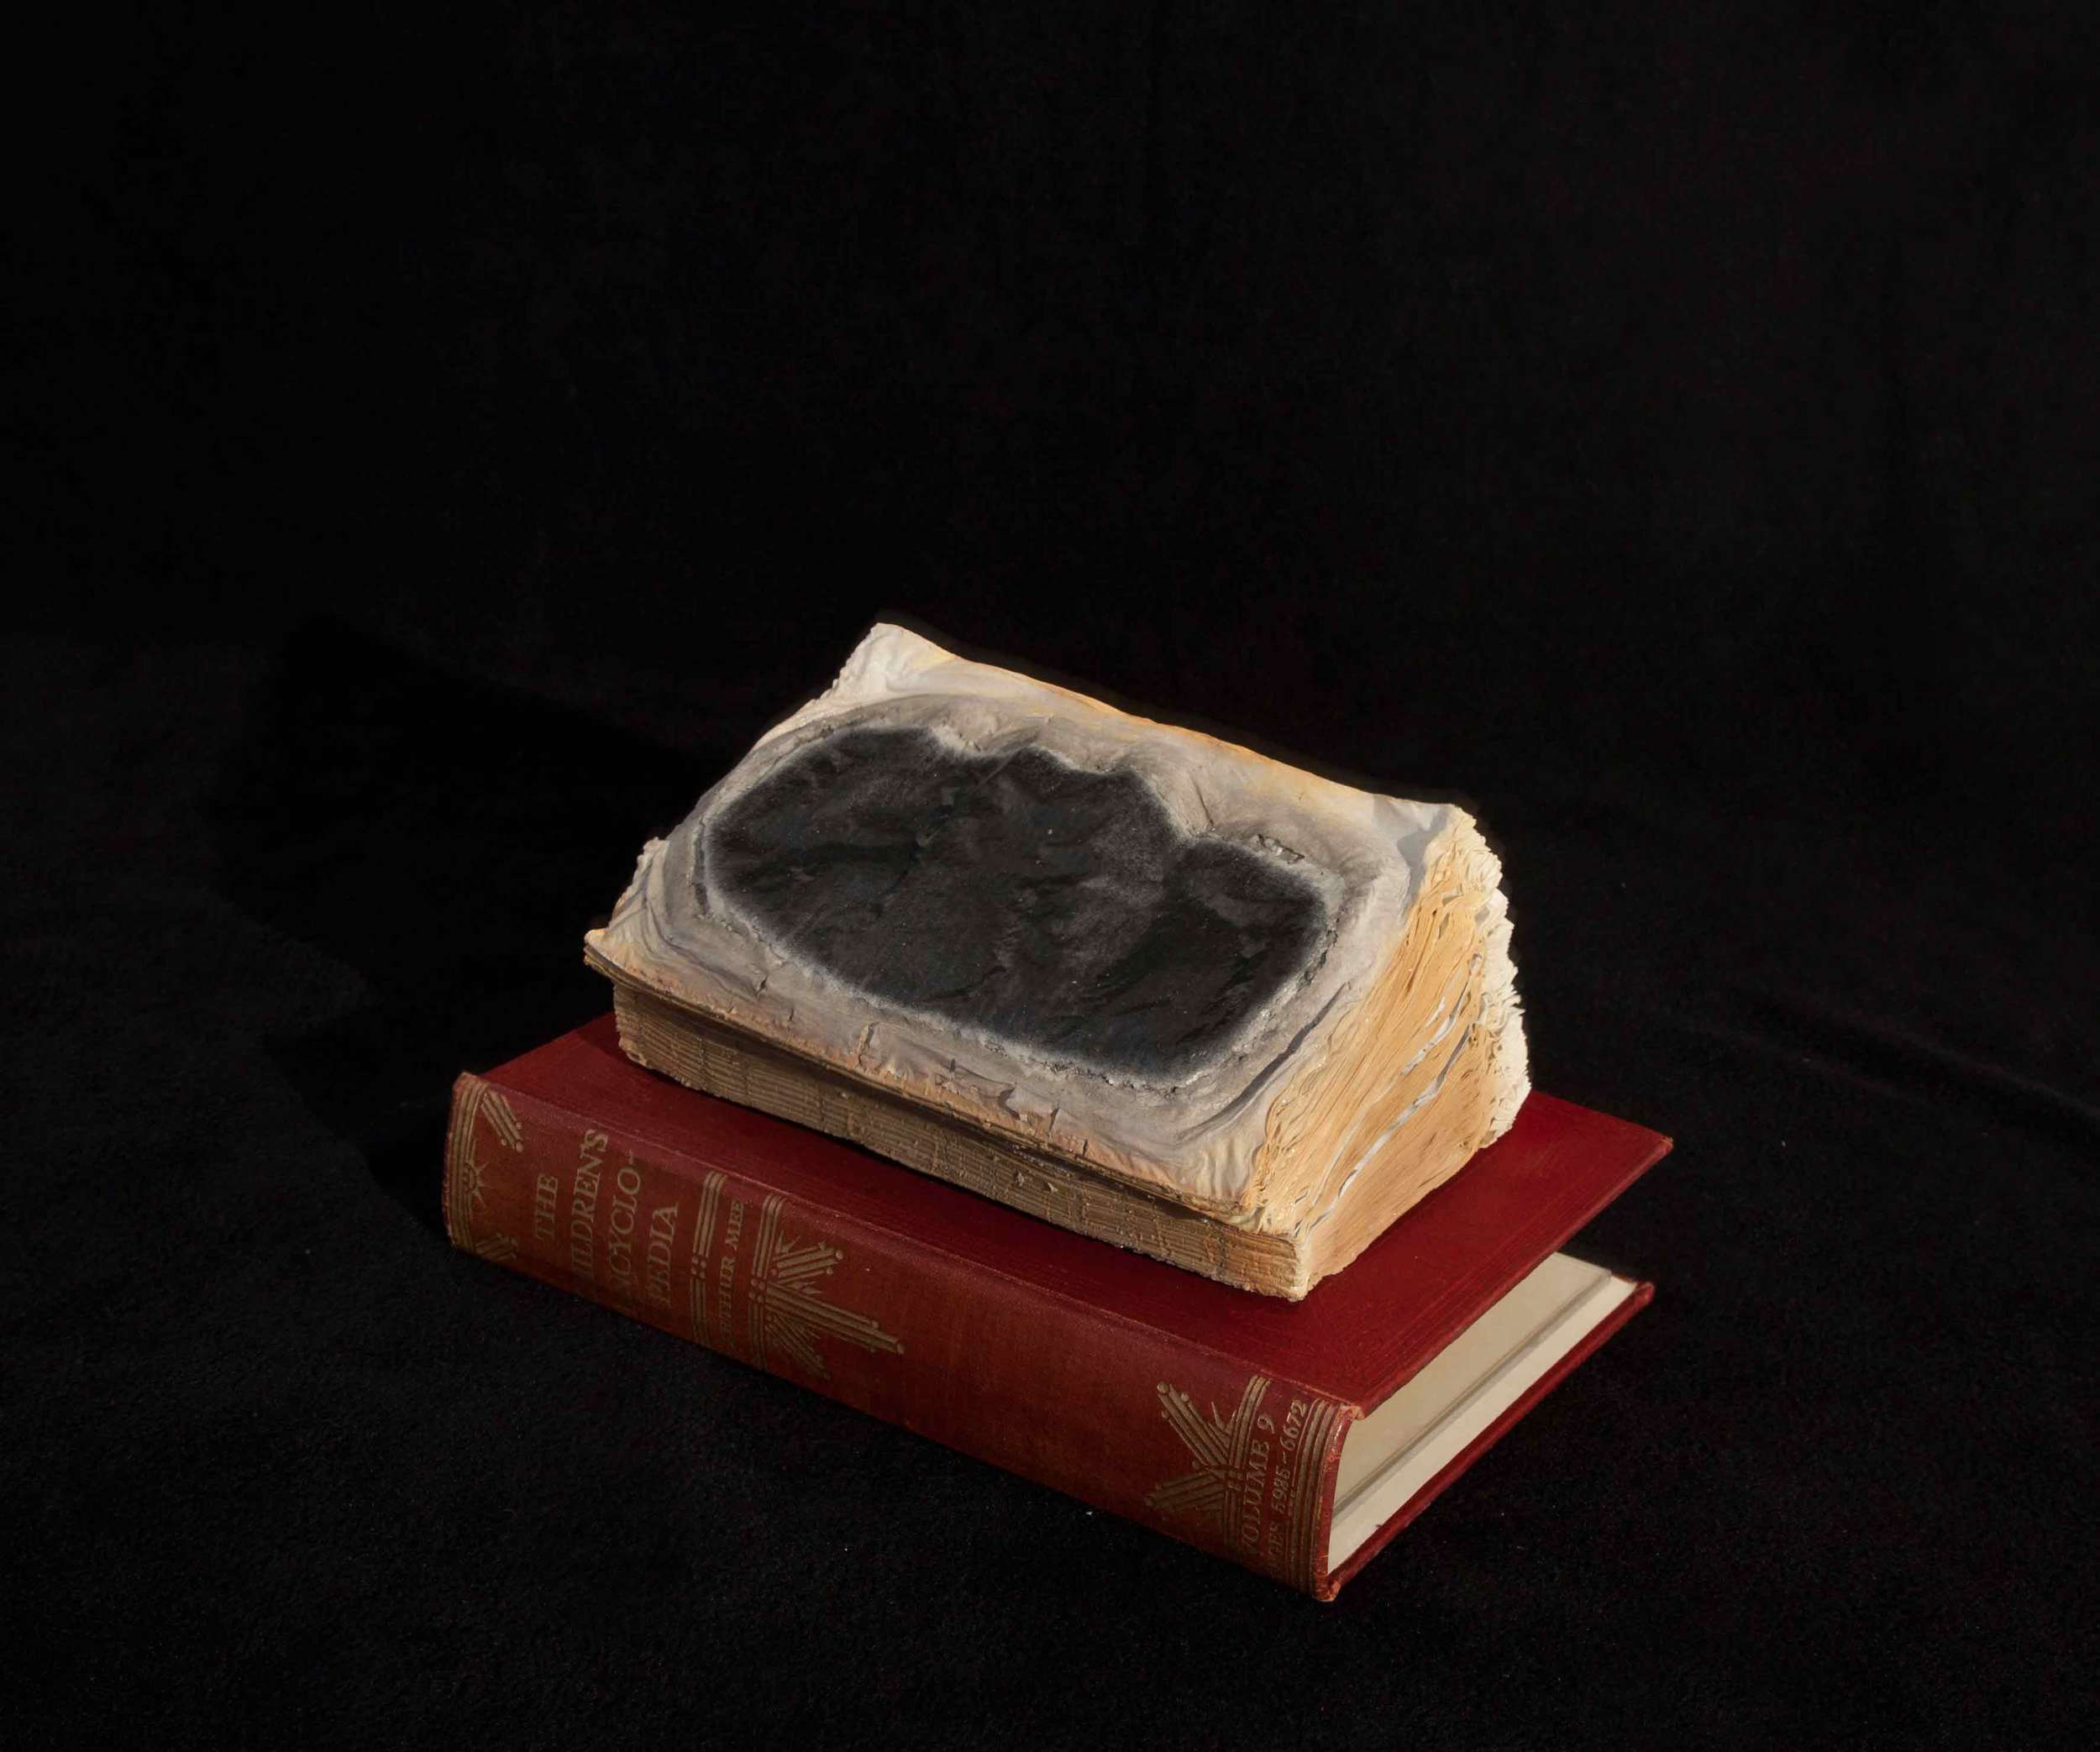 CYRUS TANG   Children's Encyclopaedia Vol 9  2016 Cremated book ashes, book cover and acrylic case 29 x 21 x 21 cm